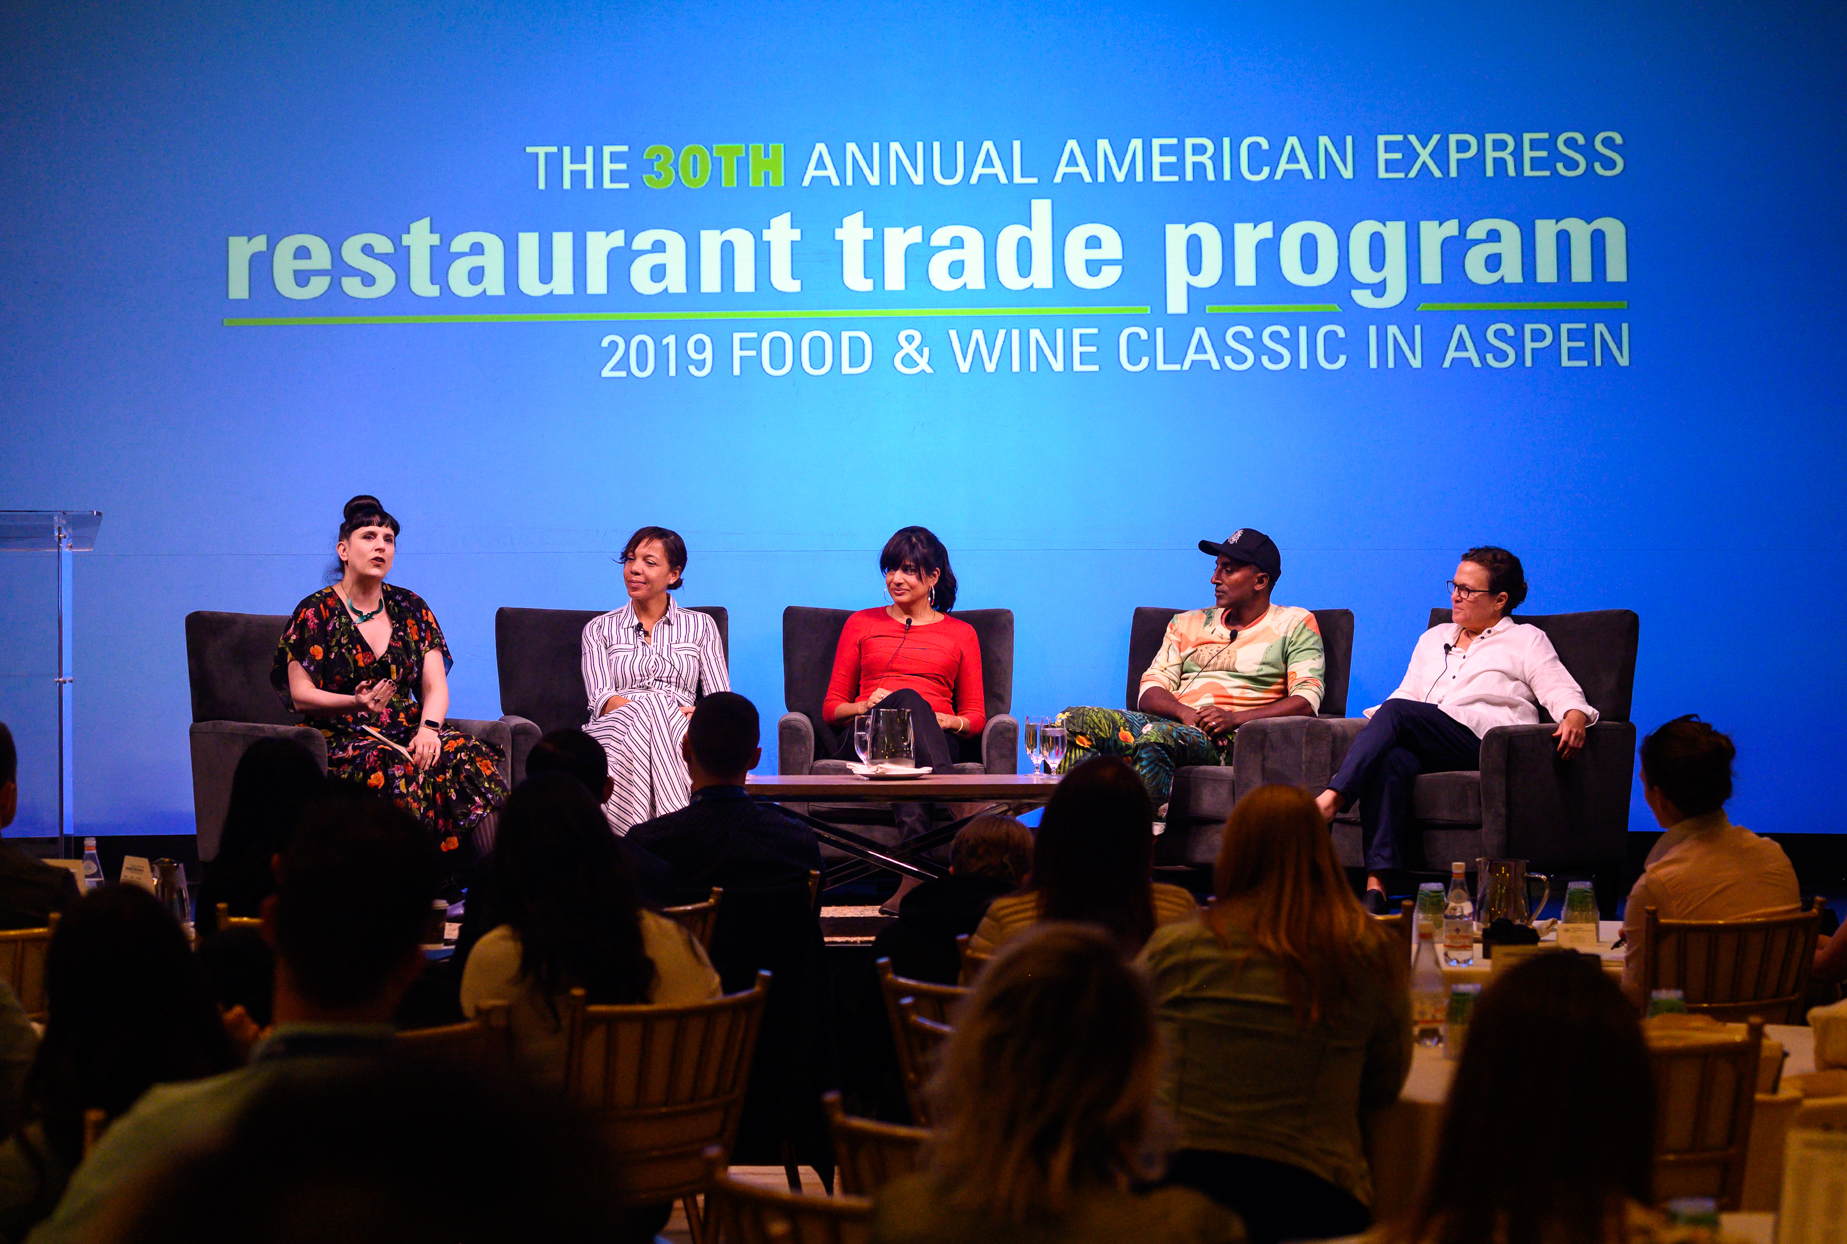 Food & Wine Classic Aspen Restaurant Trade Program